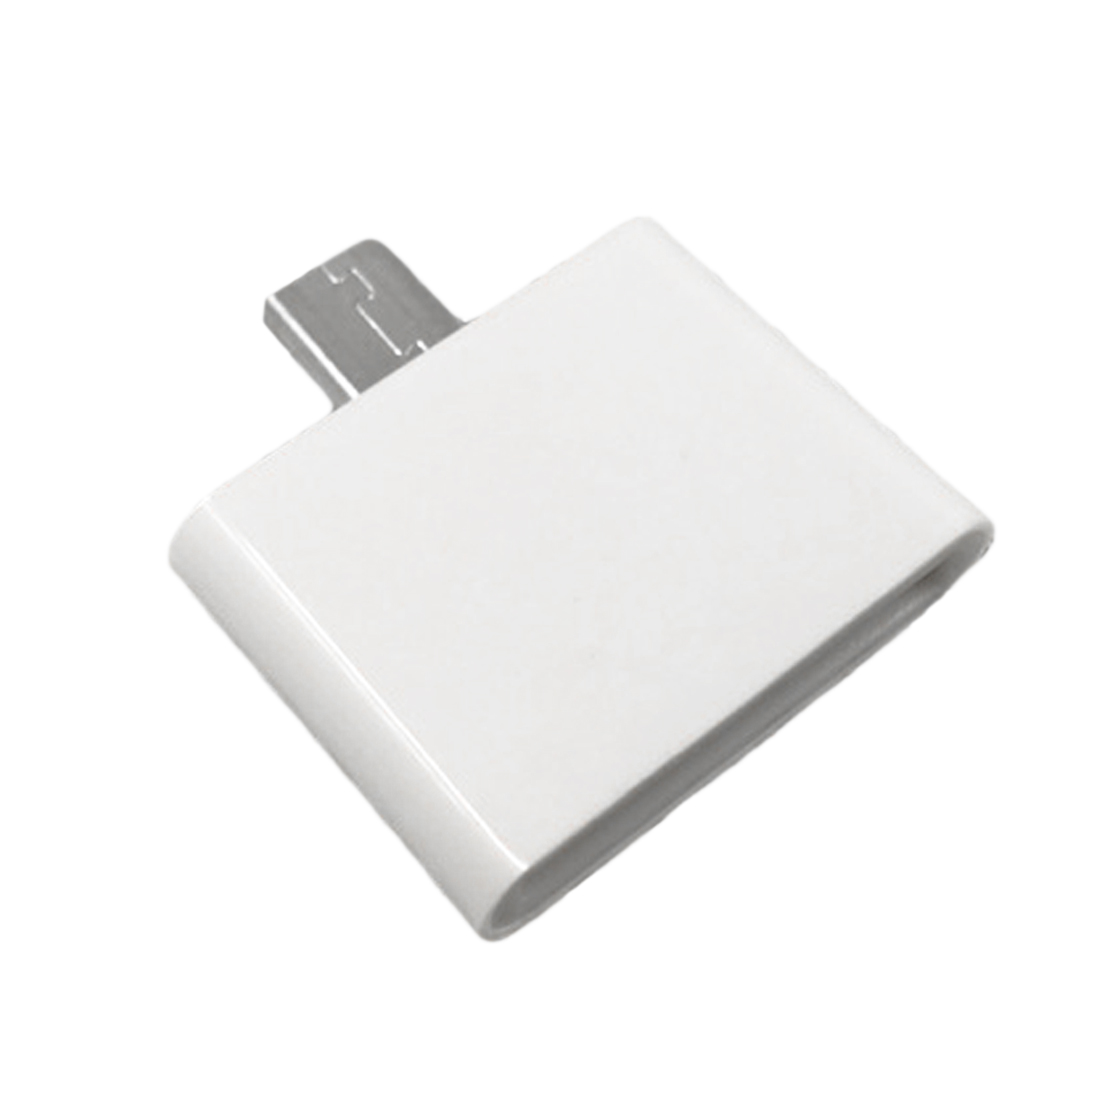 Etmakit 30 Pin to Micro usb Dock Charger Adapter Converter For iPhone 4 4s 3GS ipad 3 2 ipod Android Charging USB Cable Cord